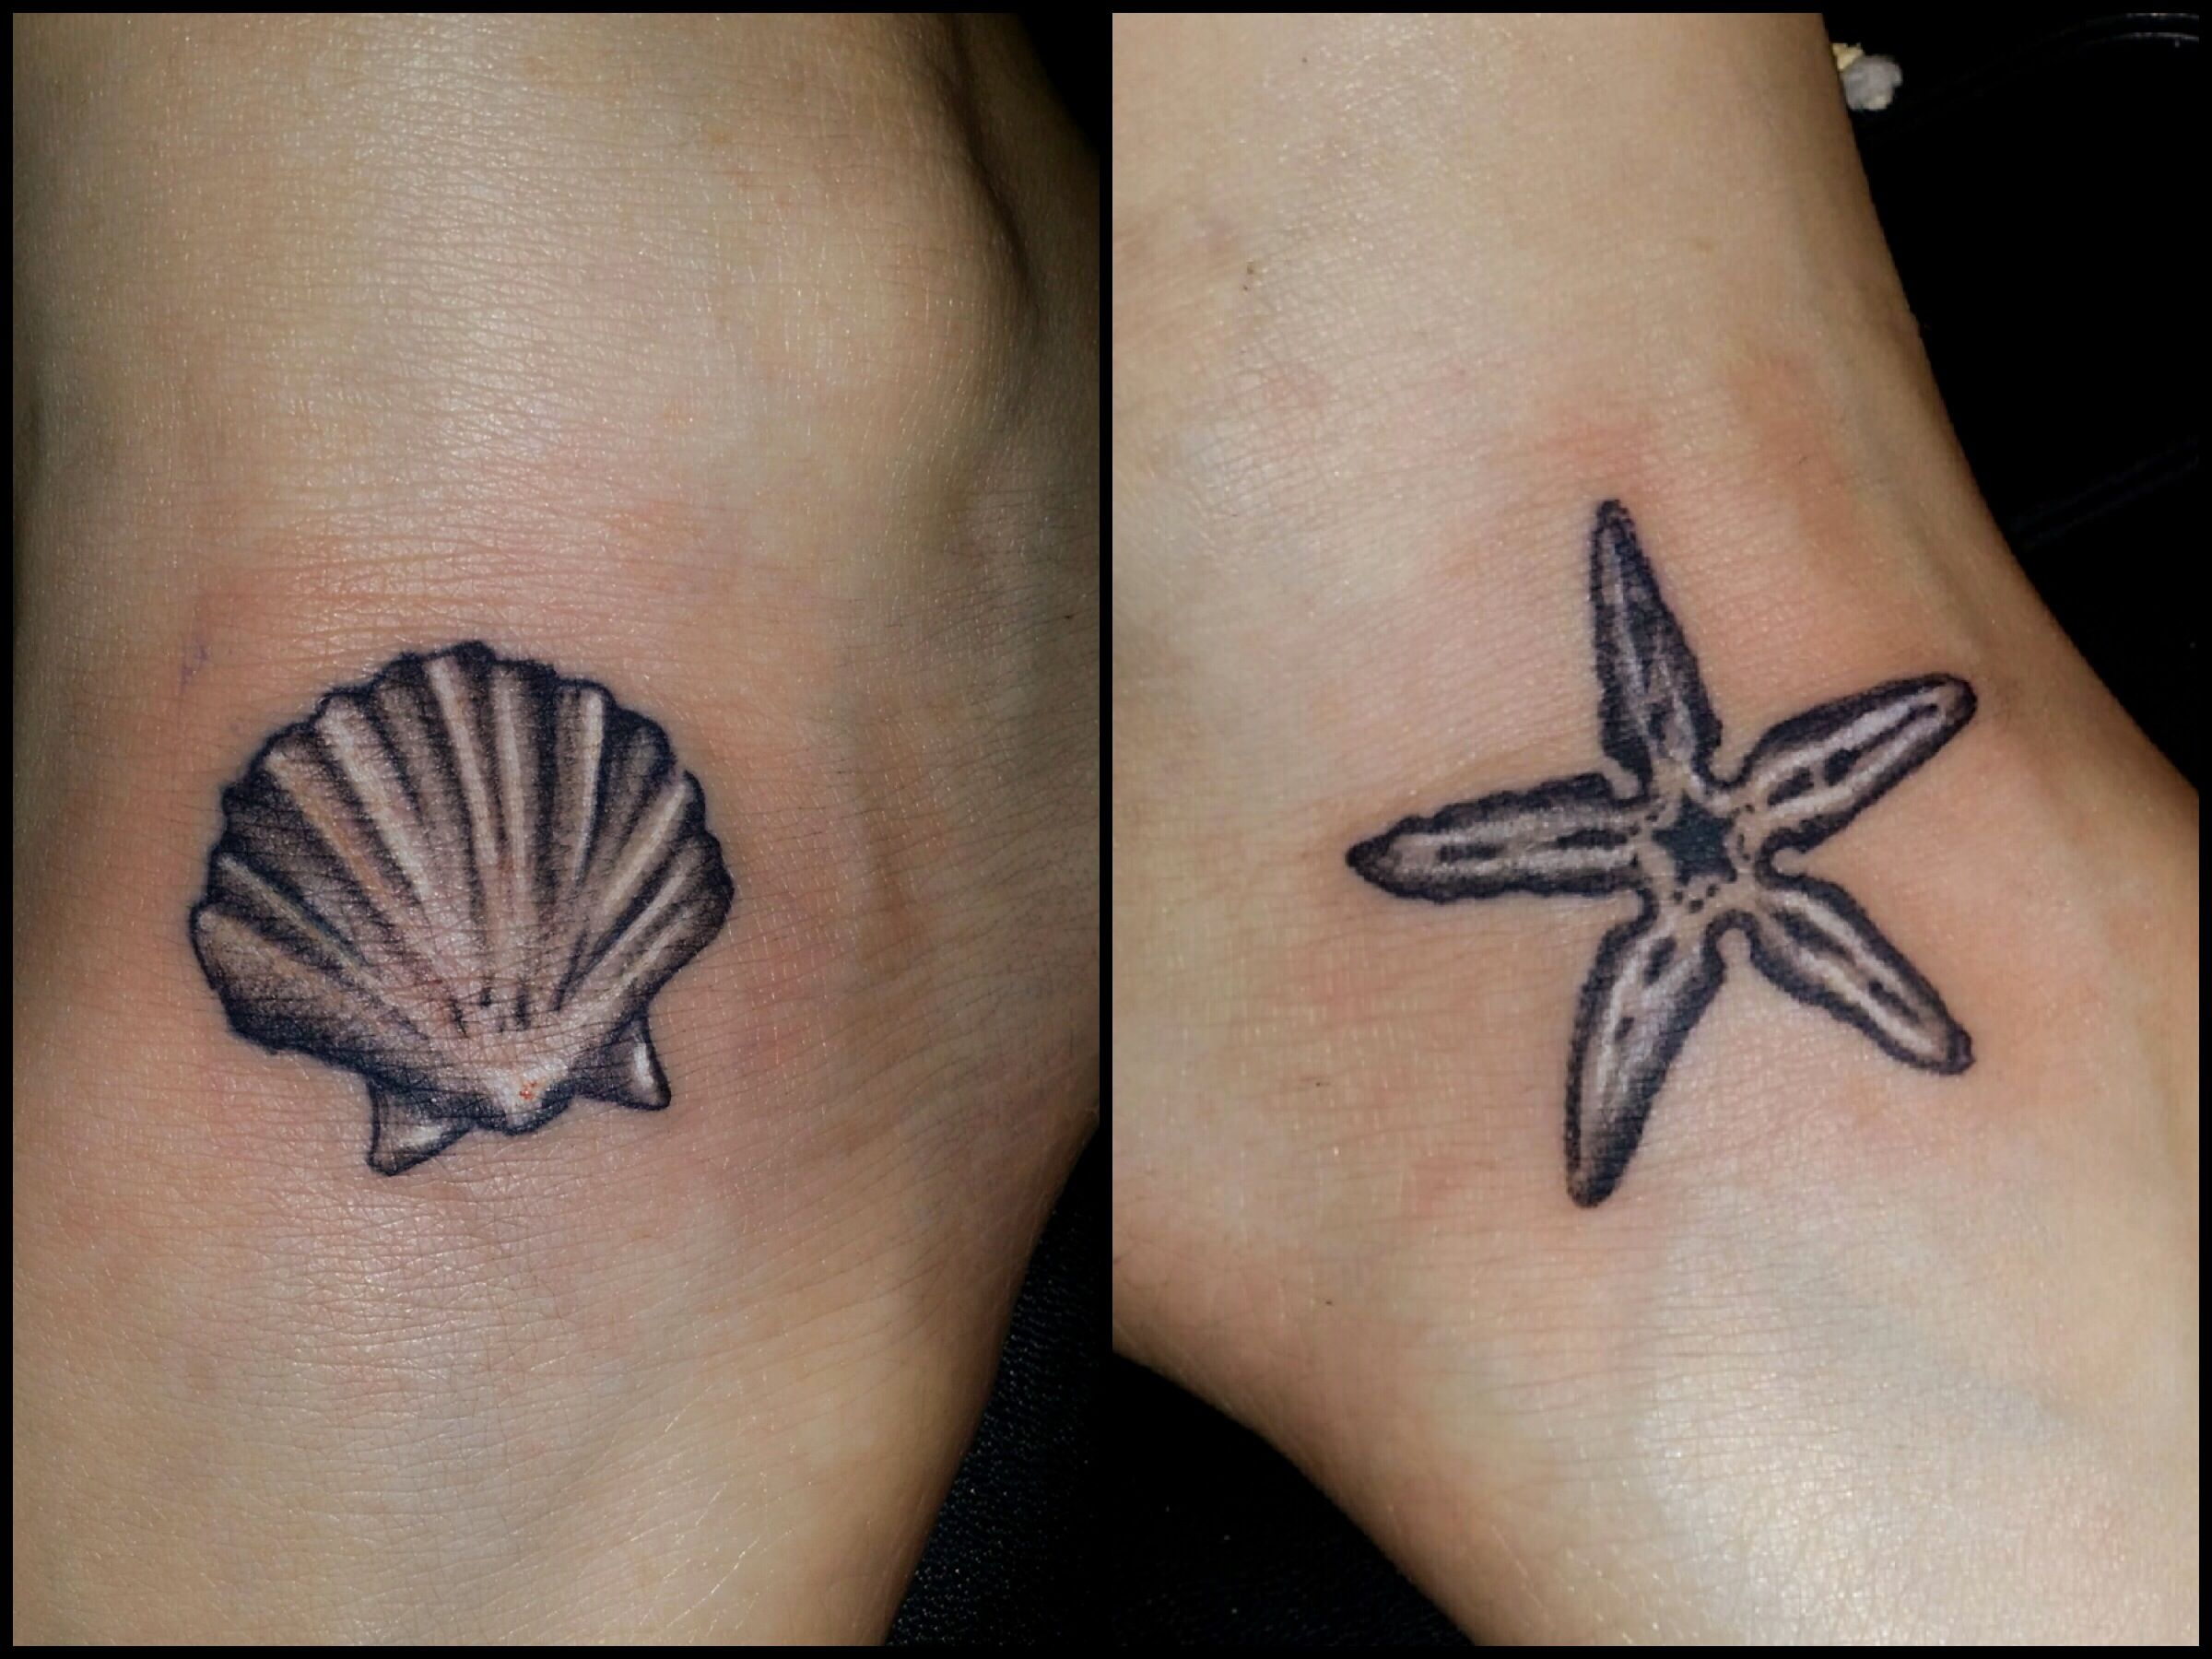 e2d1de2d6 Seashell and Starfish Tattoo by Chris Vangeli of Amaryllis Tattoo, Palmer  Tsp PA. www.amaryllistattoo.com